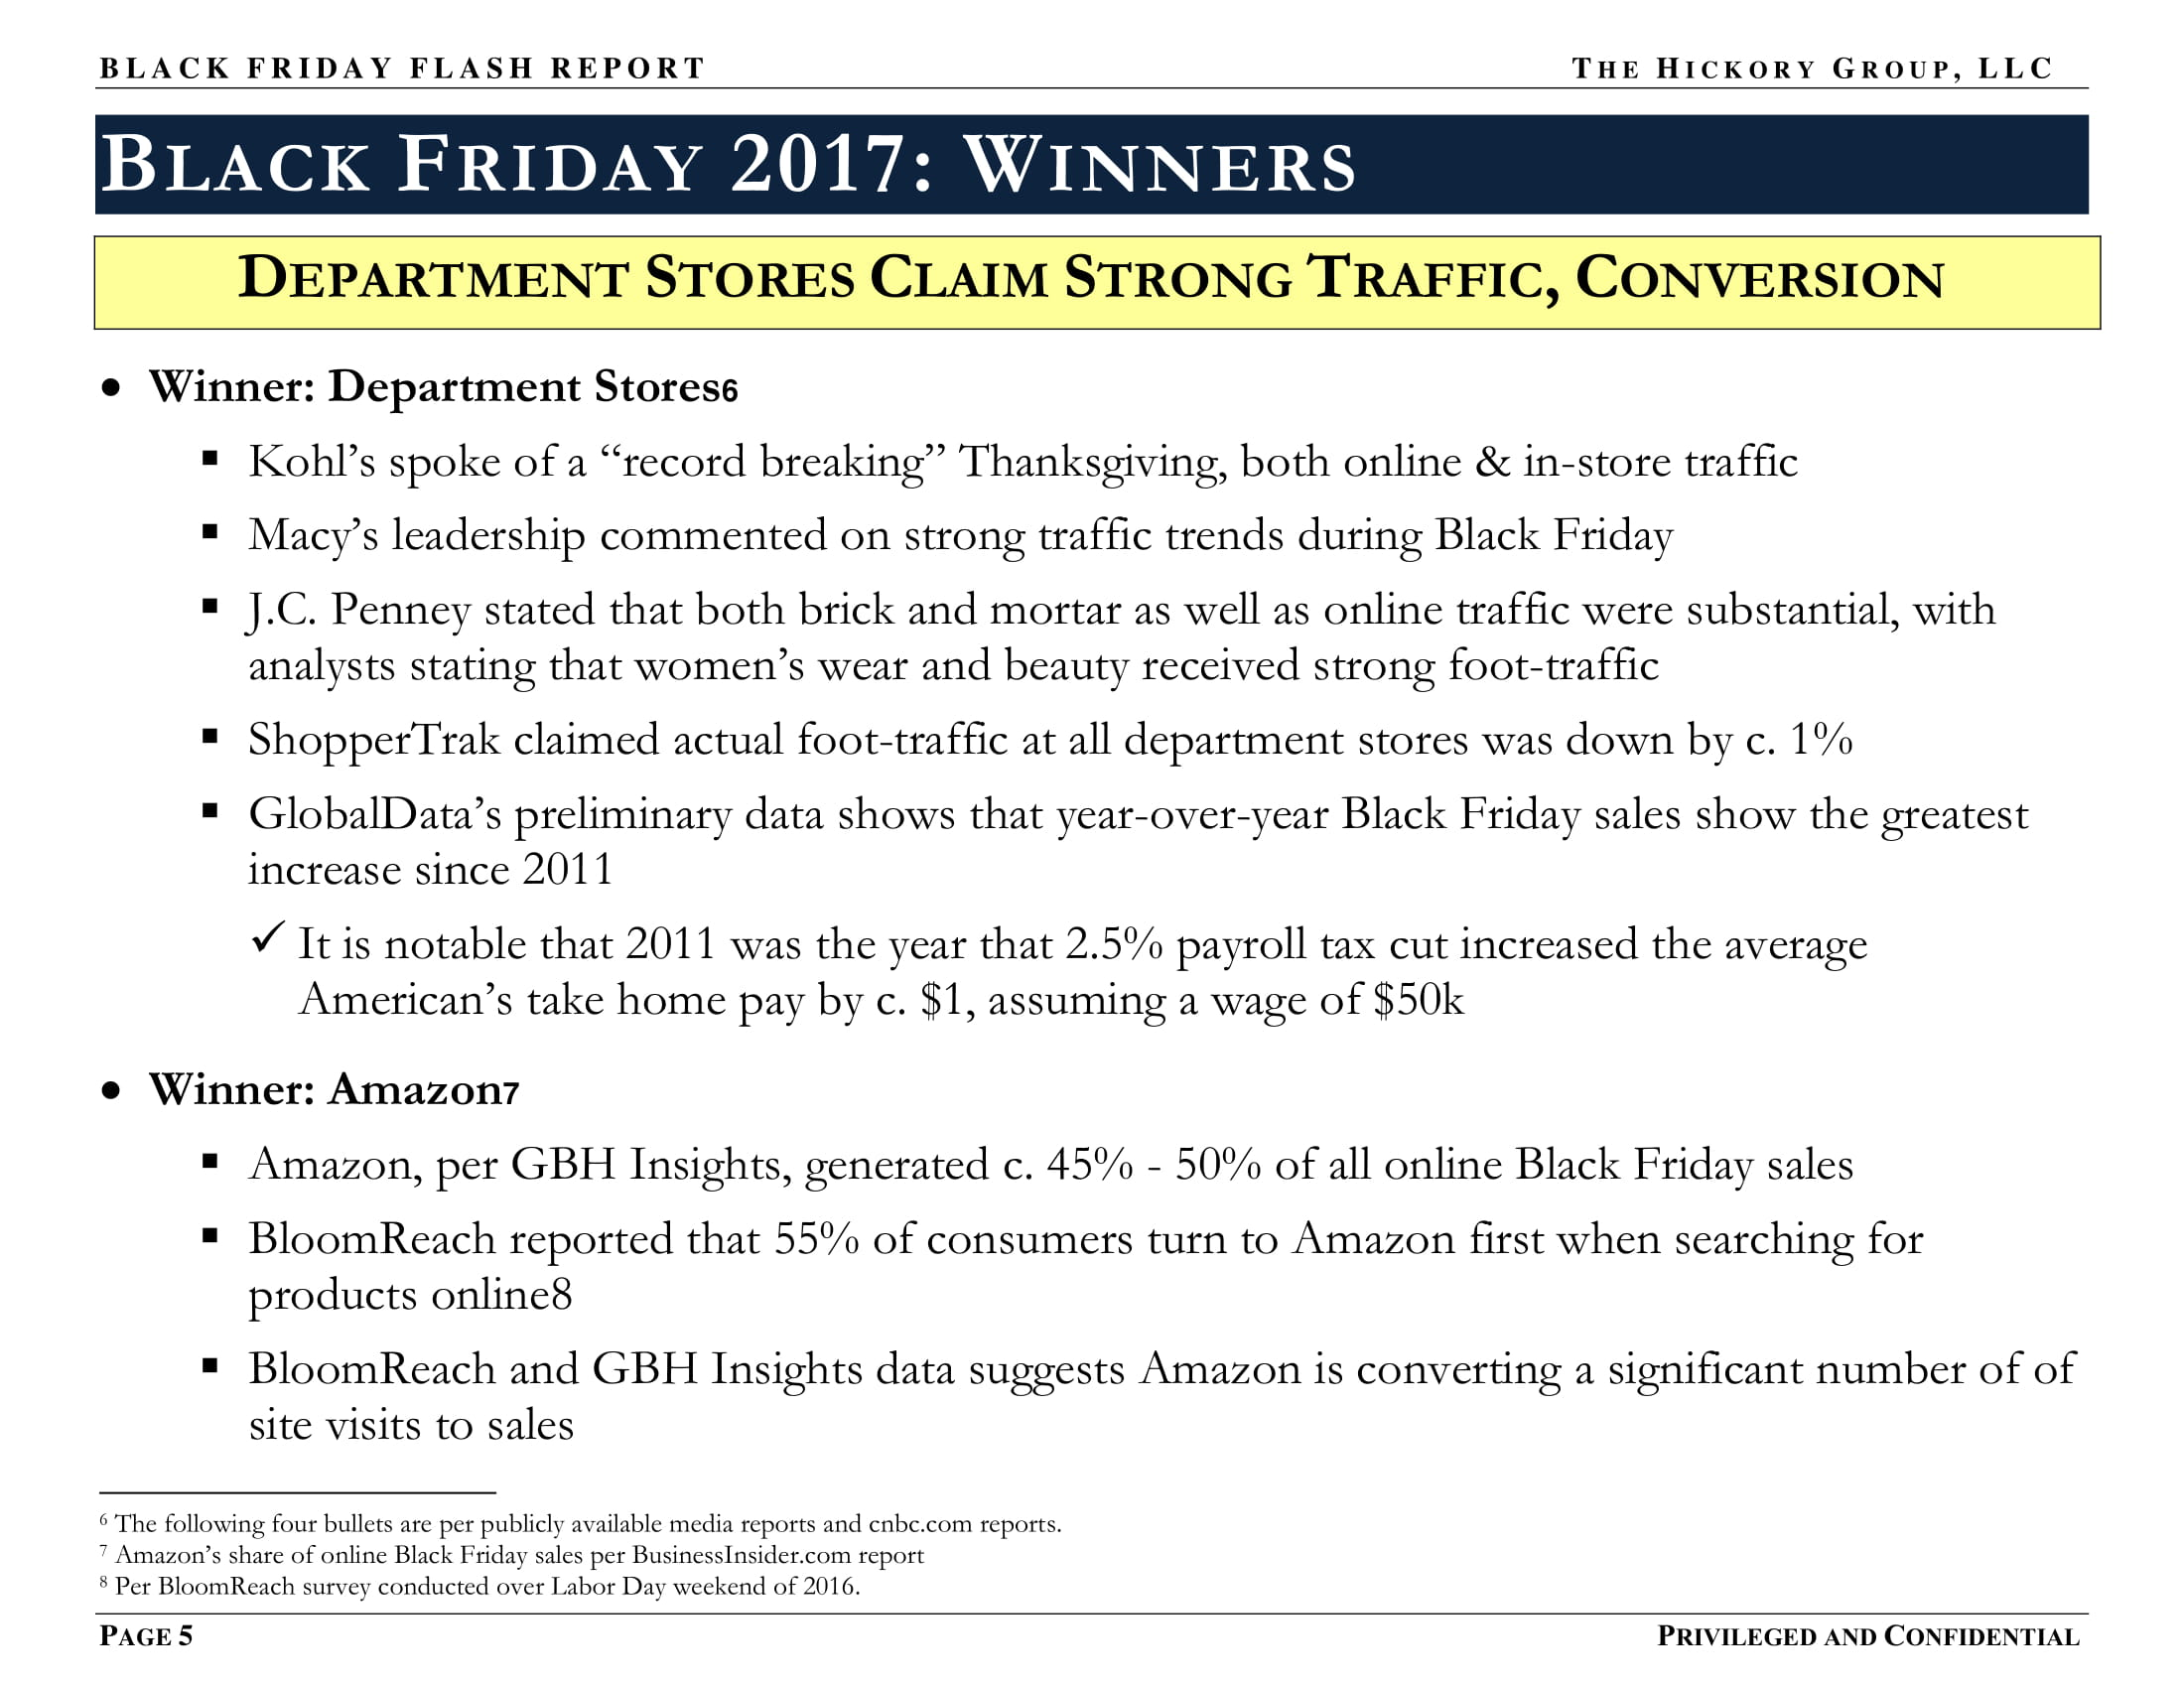 PUBLIC FINAL Flash Summary Black Friday (27 November 2017) Privileged and Confidential-5.jpg